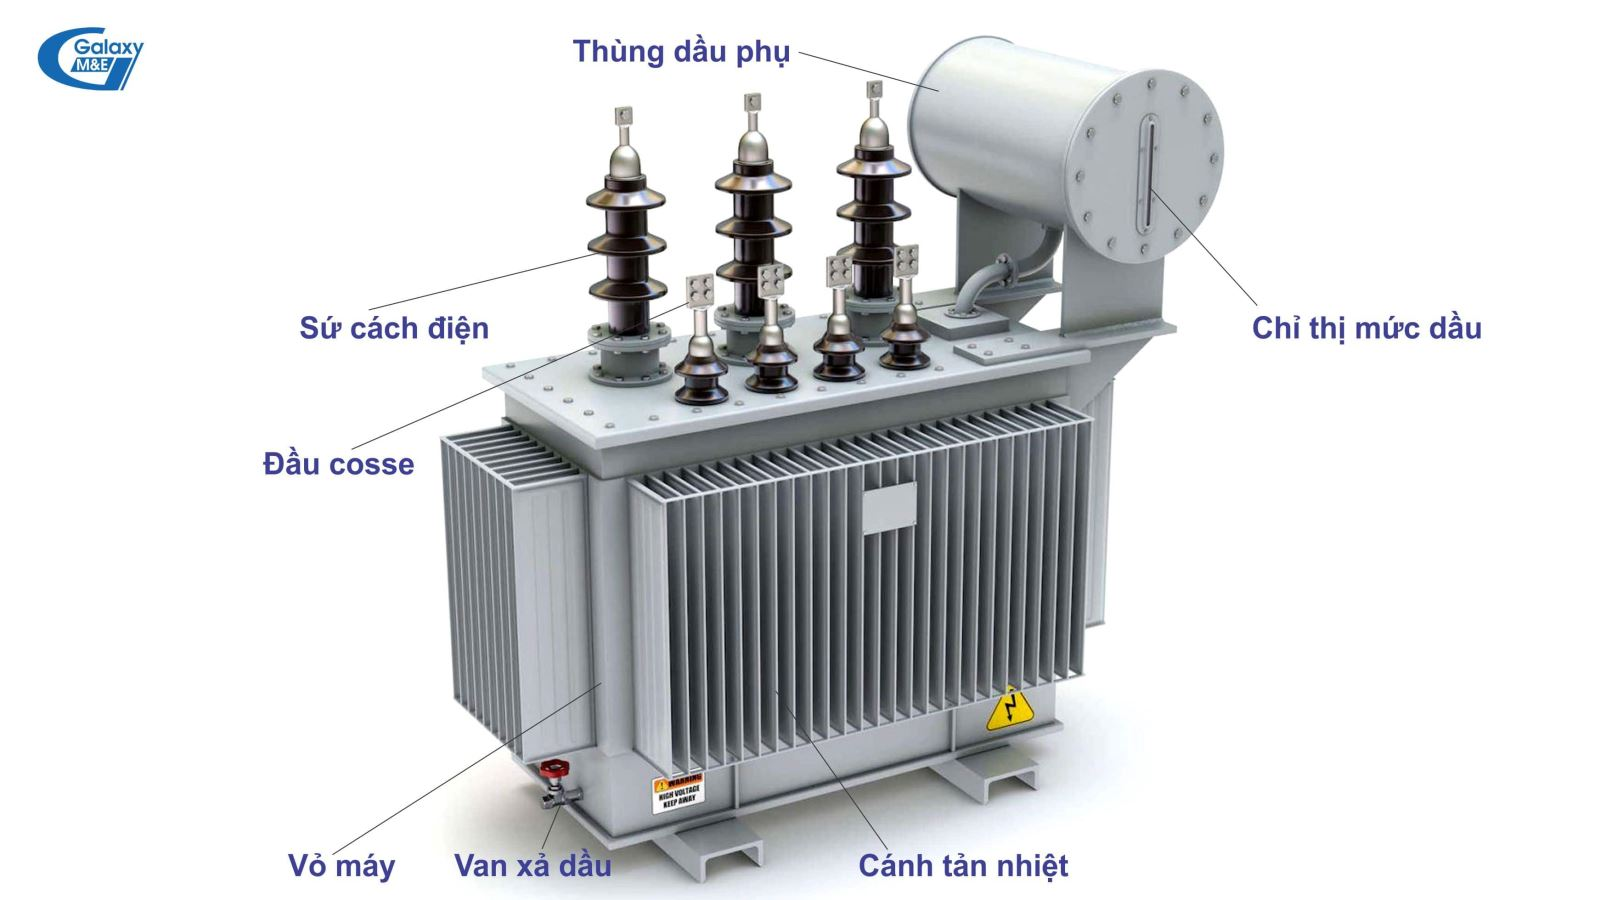 Typical design of a 3-phase open-type transformer.